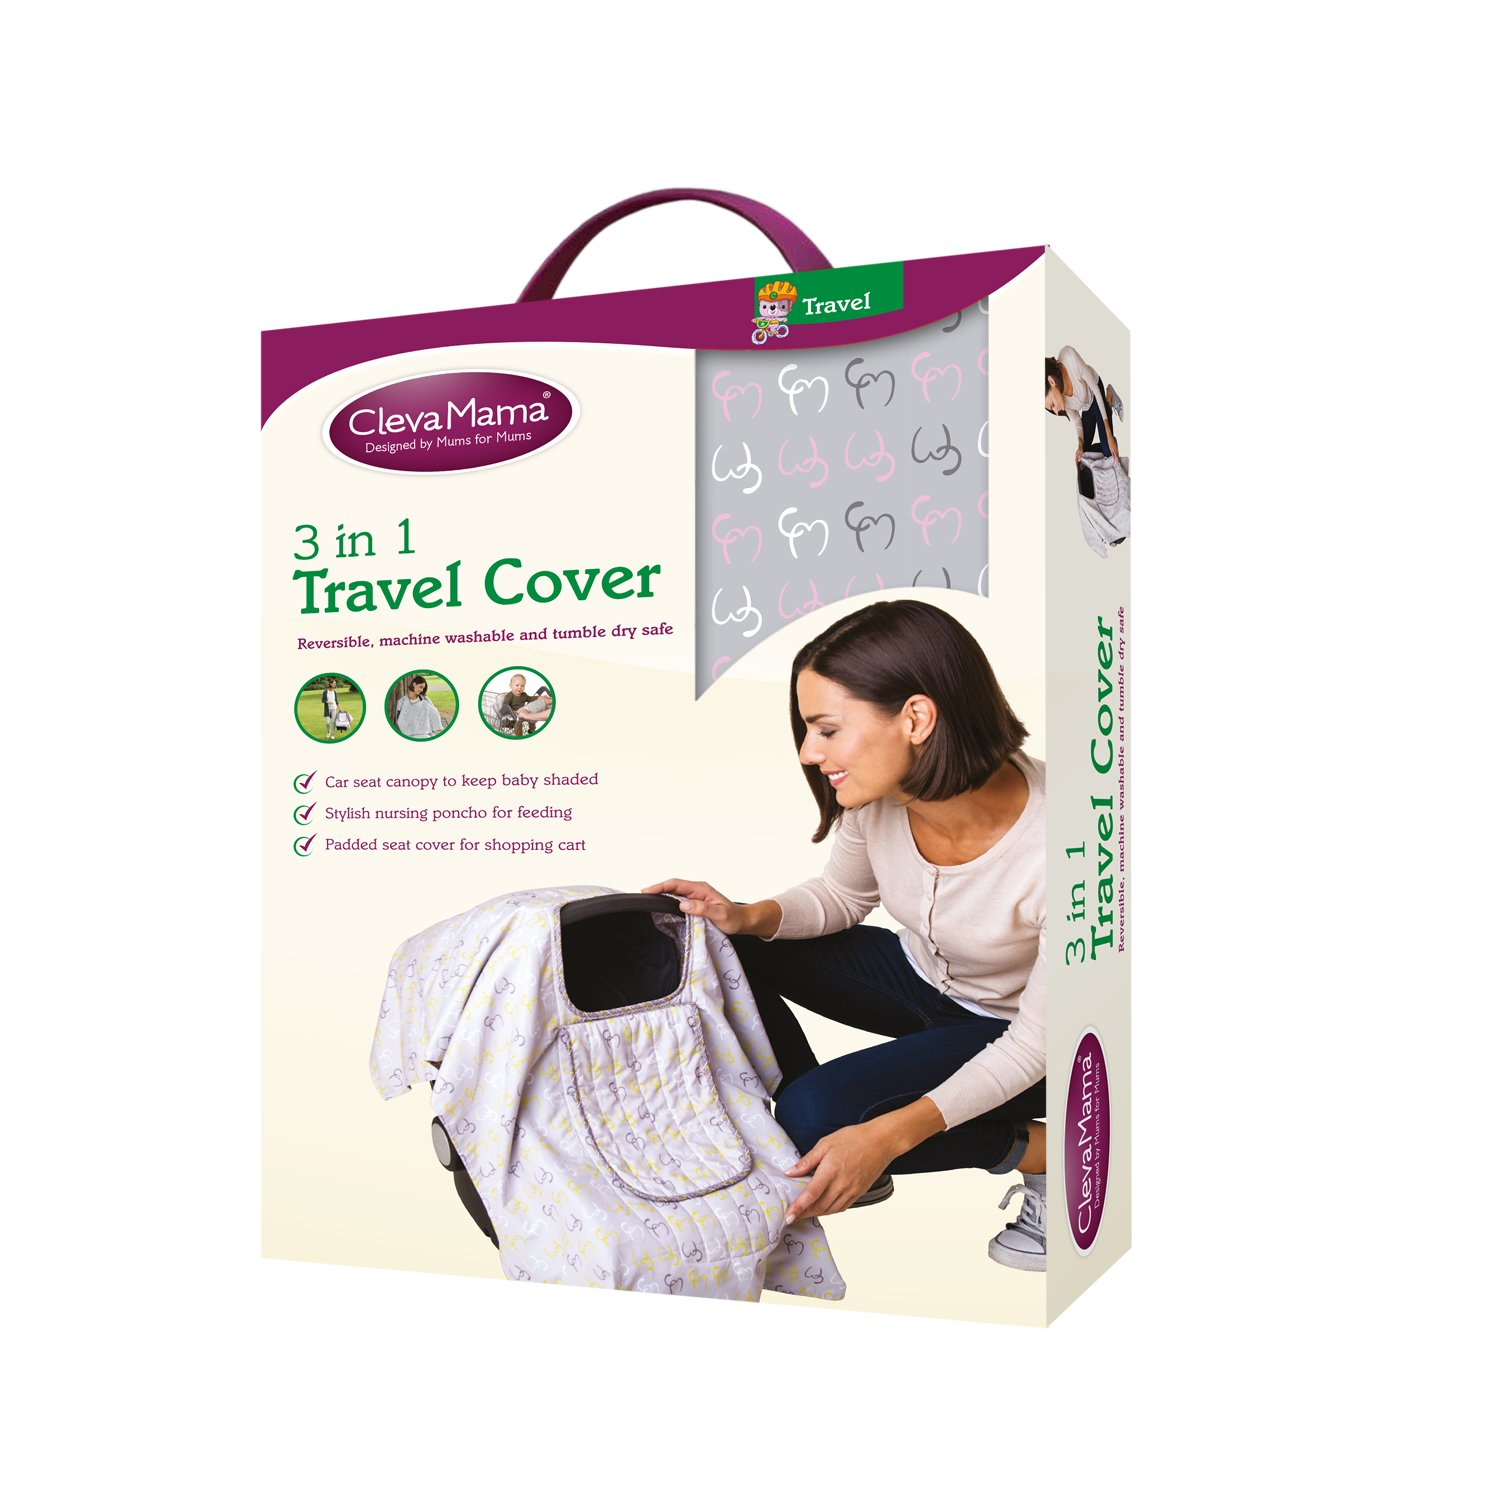 Clevamama 3-In-1 Travel Cover - Nursing poncho, Padded seat and Canopy (Green)